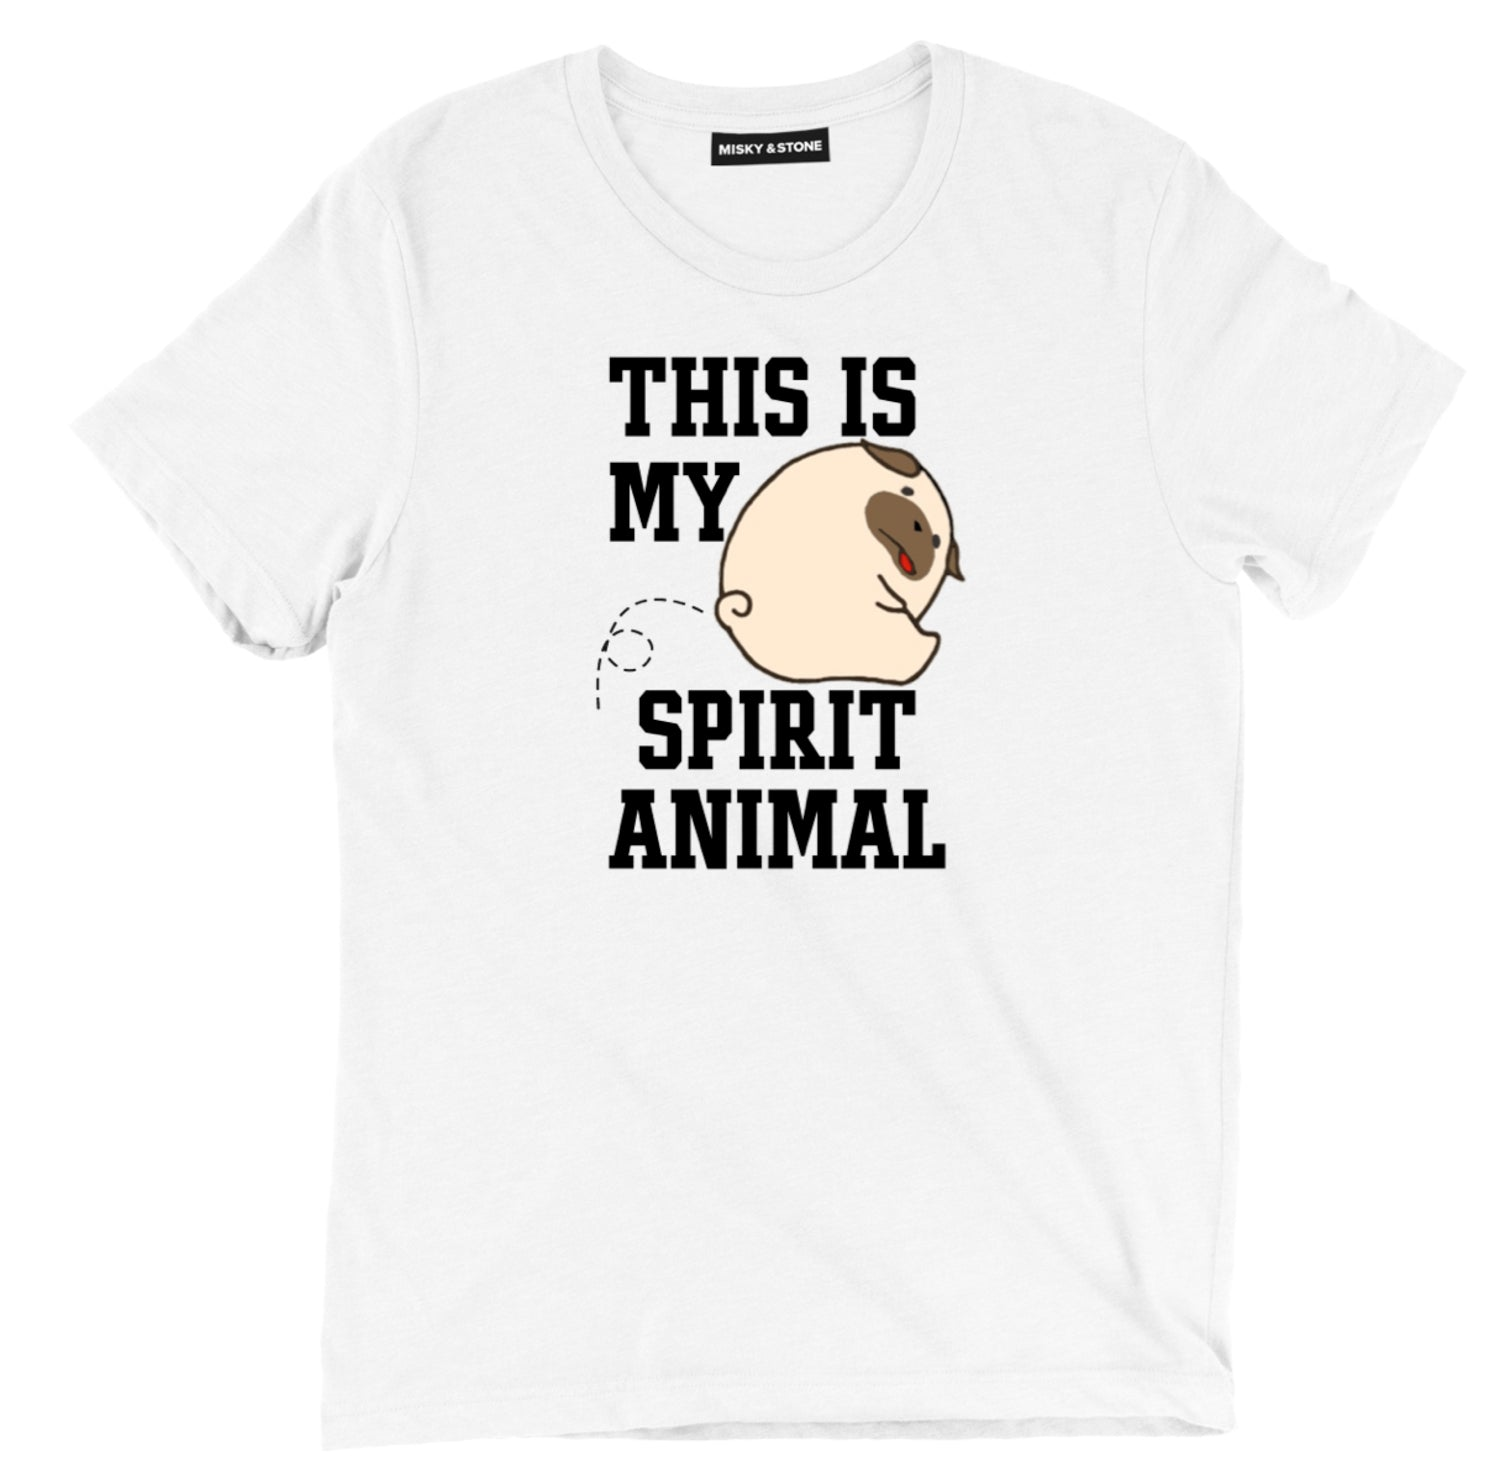 spirit animal dog tee shirt, spirit animal dog lover tee shirt, spirit animal dog lover merch, funny dog tee shirt,